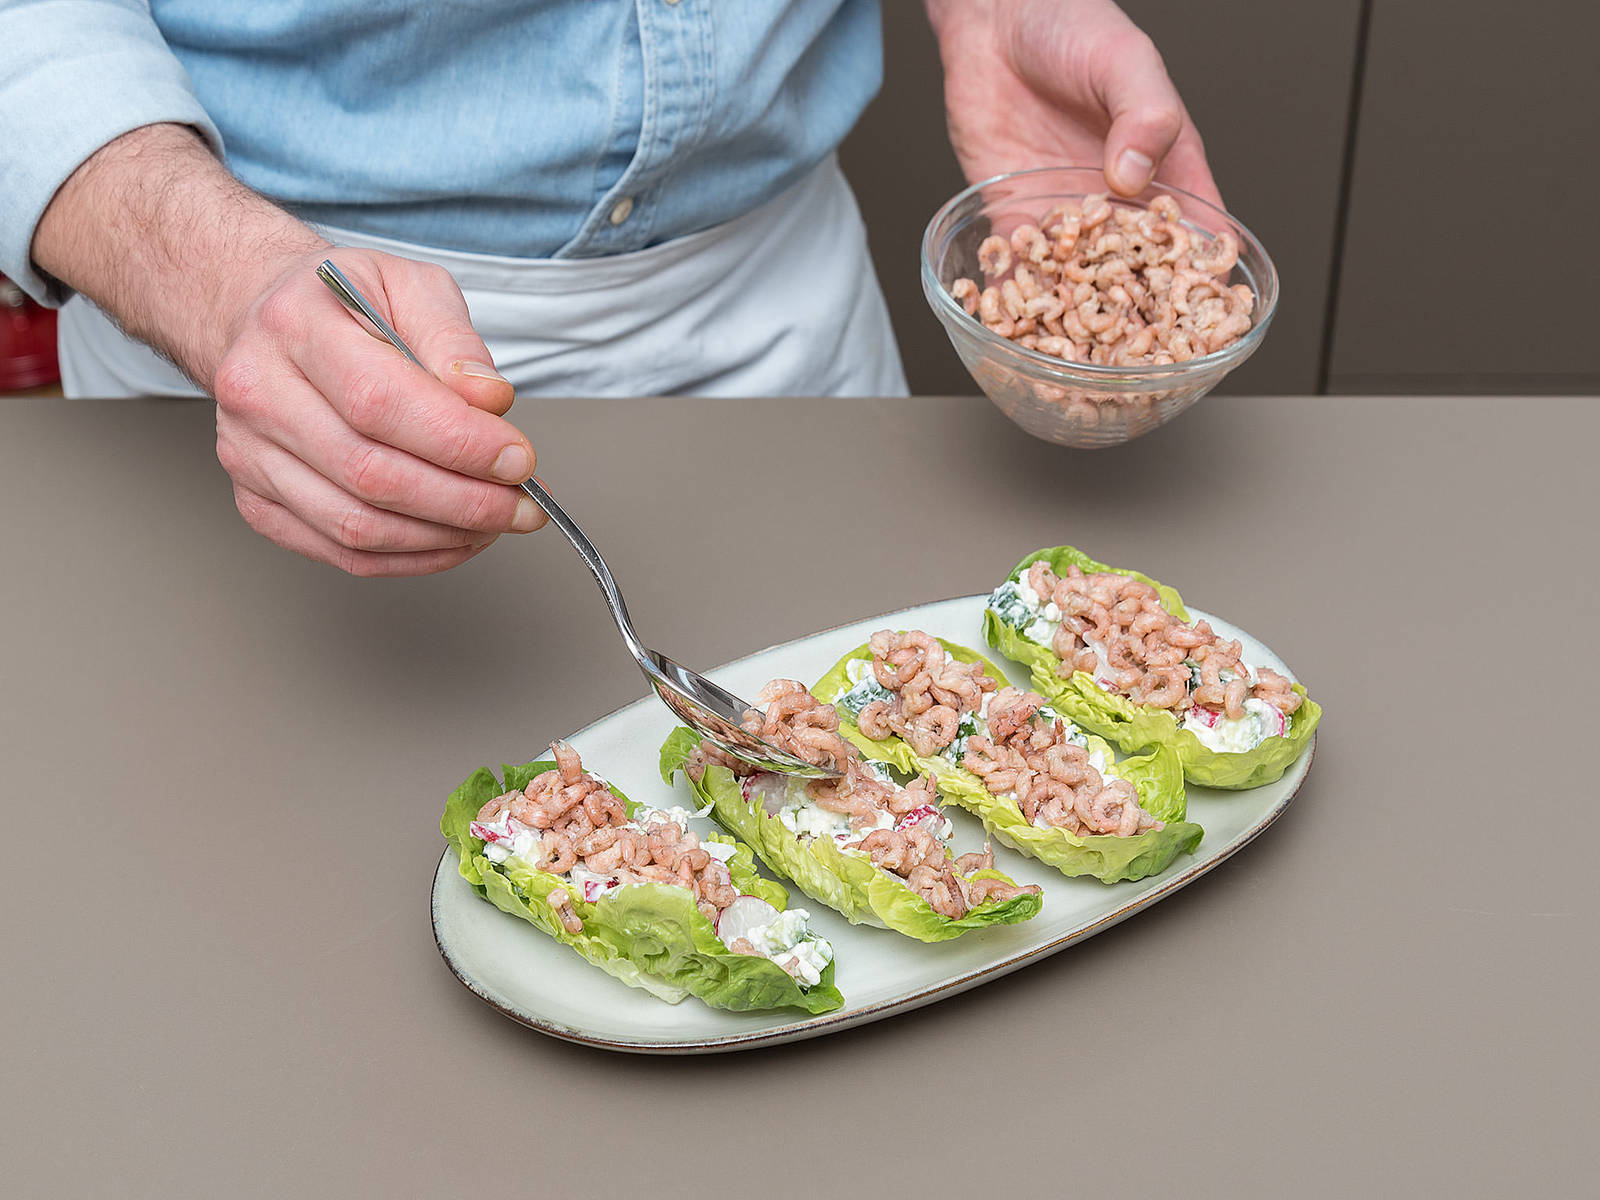 Fill lettuce leaves with the cucumber-cheese mixture and add a few bay shrimp.